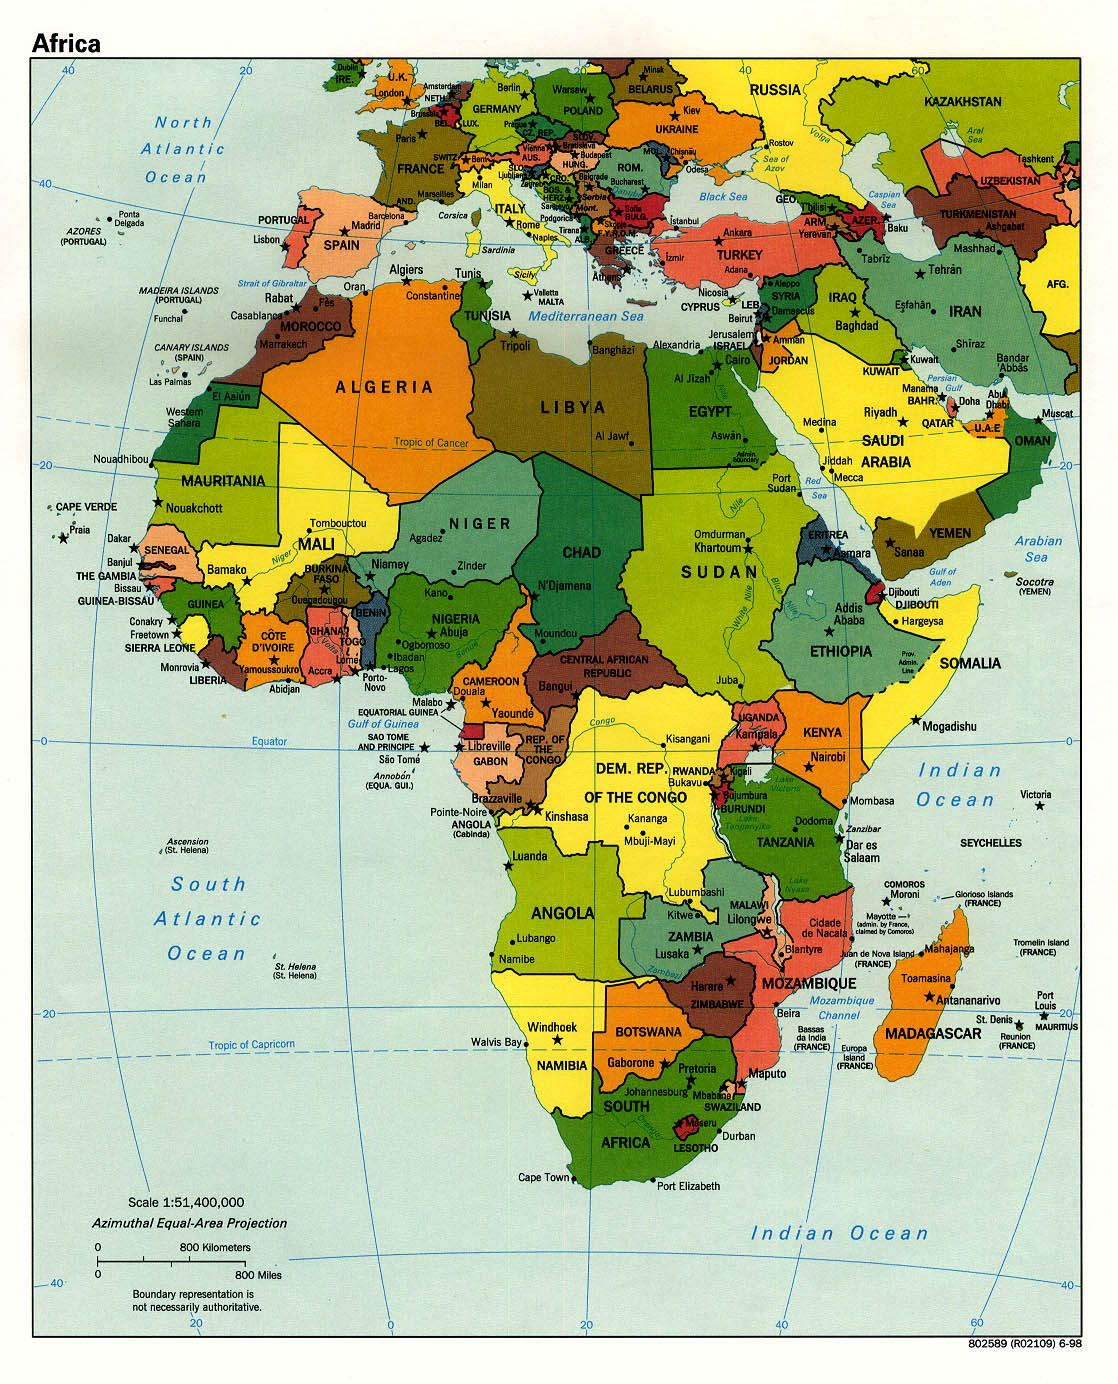 Map Of Africa And Middle East Countries.Map Of Middle East Countries Return To Contents Returnto